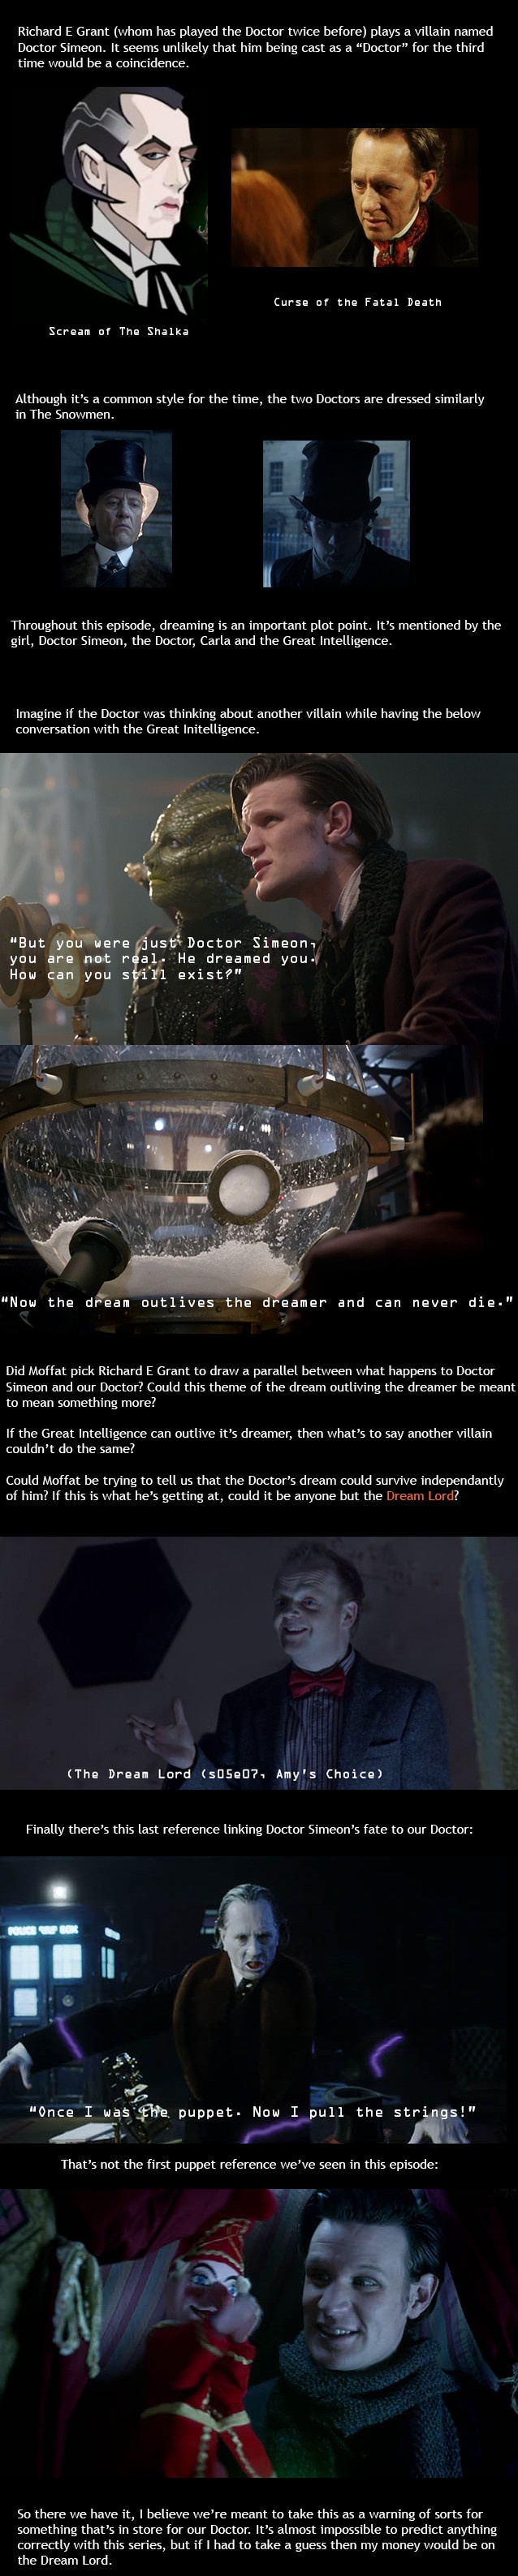 Here's an interesting theory; quite plausible too. Read more on the Dream Lord here: http://tardis.wikia.com/wiki/Dream_Lord.